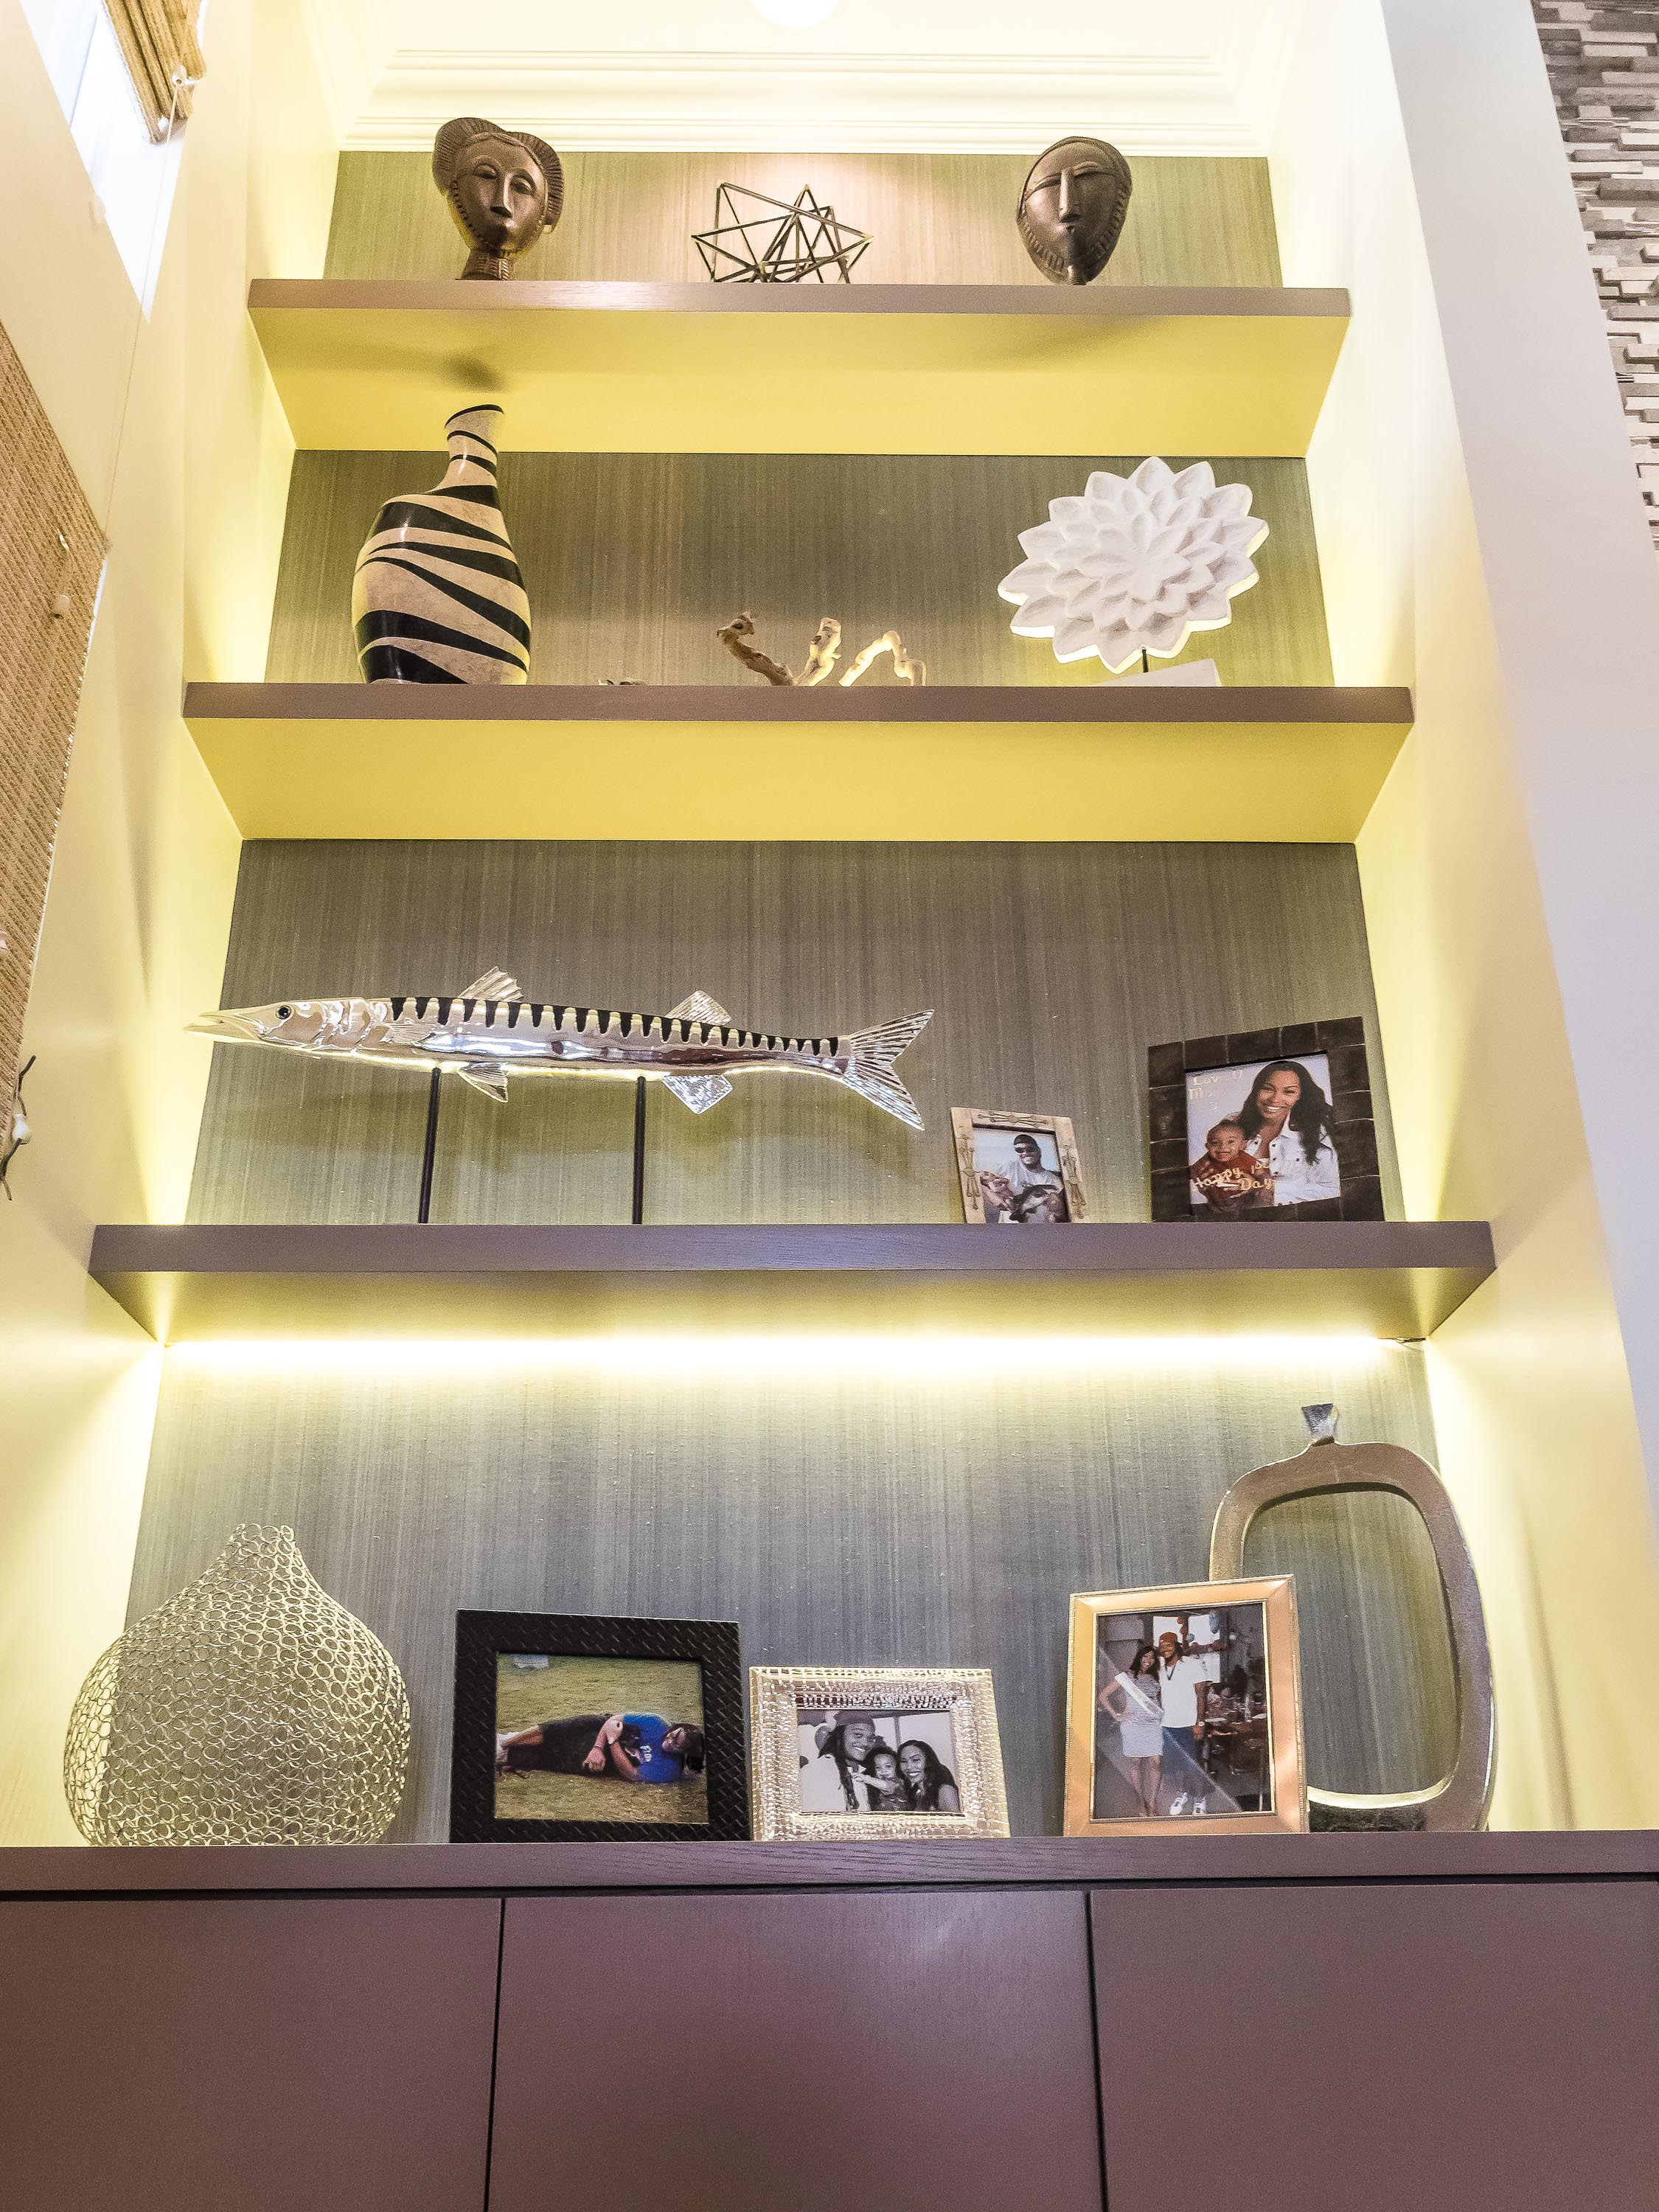 Built-in cabinetry with family picture frames and custom accessories